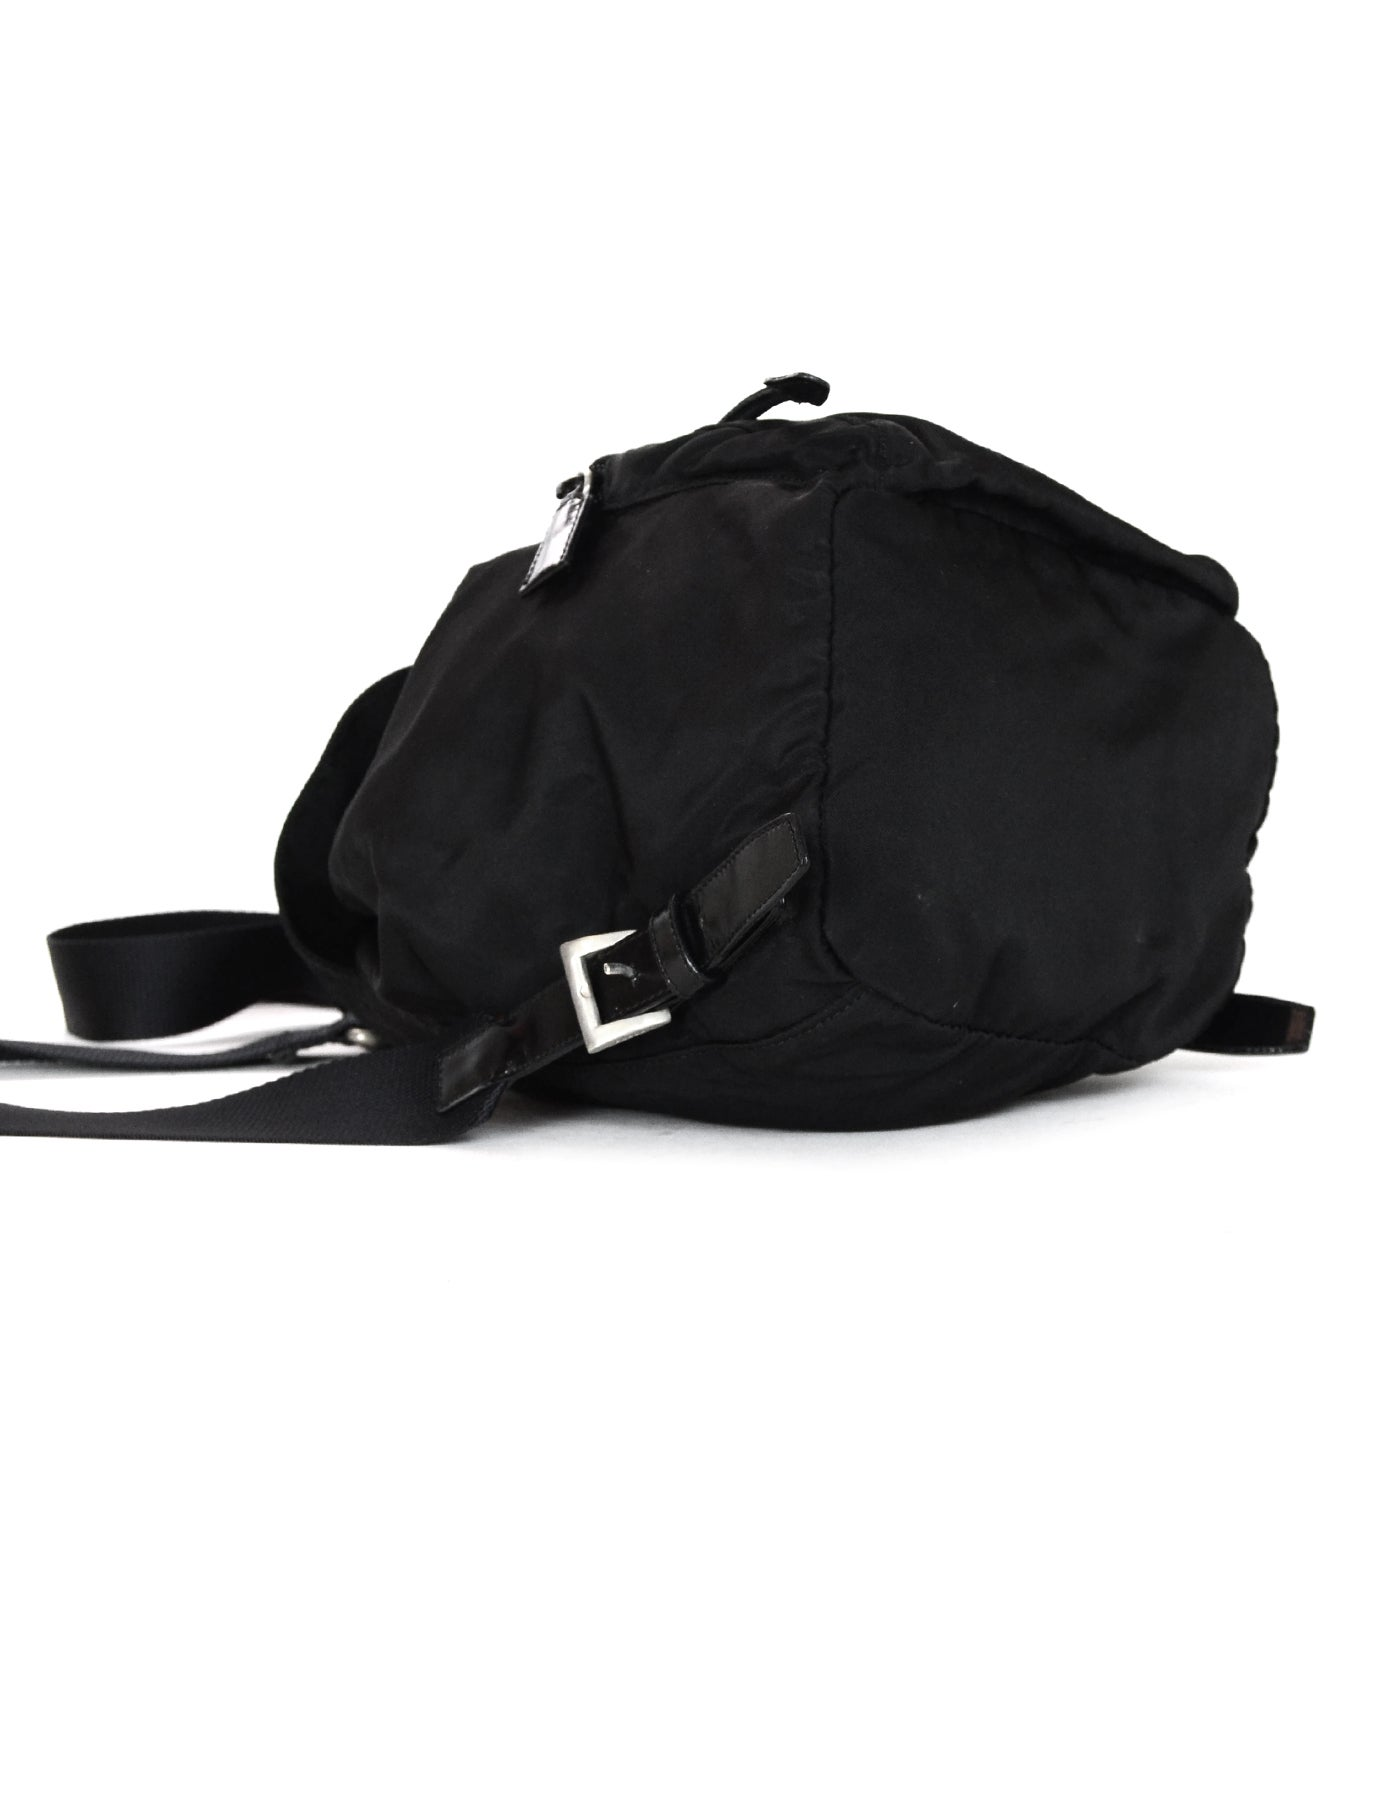 10f6bd83a36 Prada Black Nylon Small Backpack Bag W  Front Zip Pocket at 1stdibs